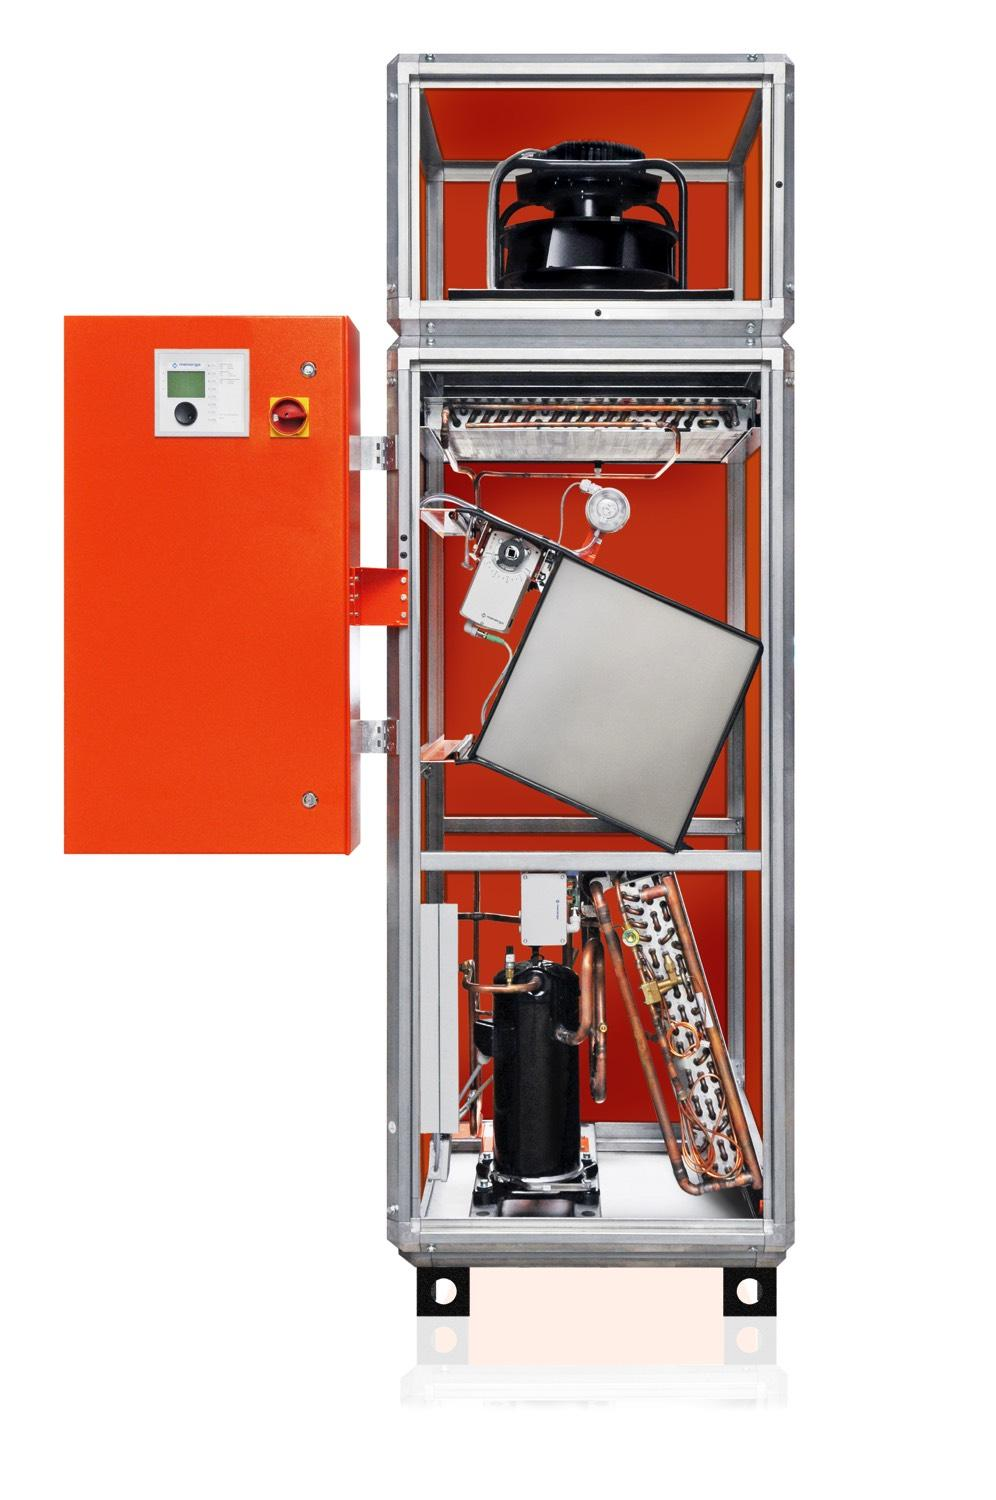 Drysolair 11 Air Dehumidification Unit With Counterflow